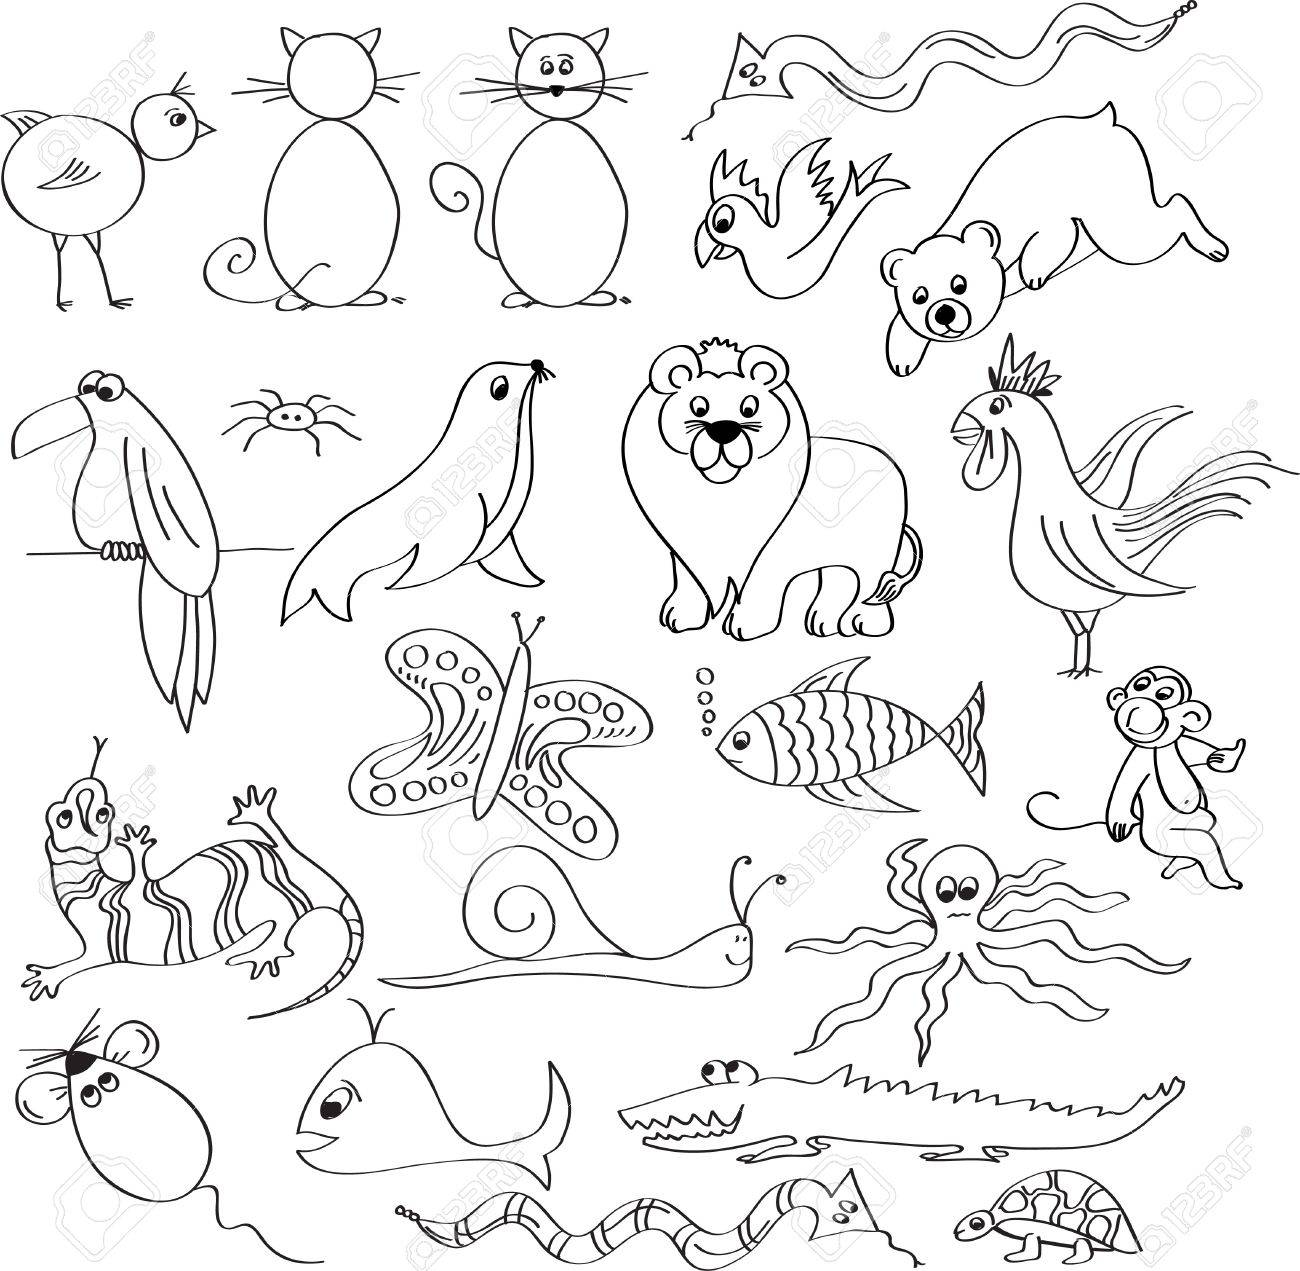 Uncategorized Drawn Pictures Of Animals animal drawn royalty free cliparts vectors and stock vector 7694407